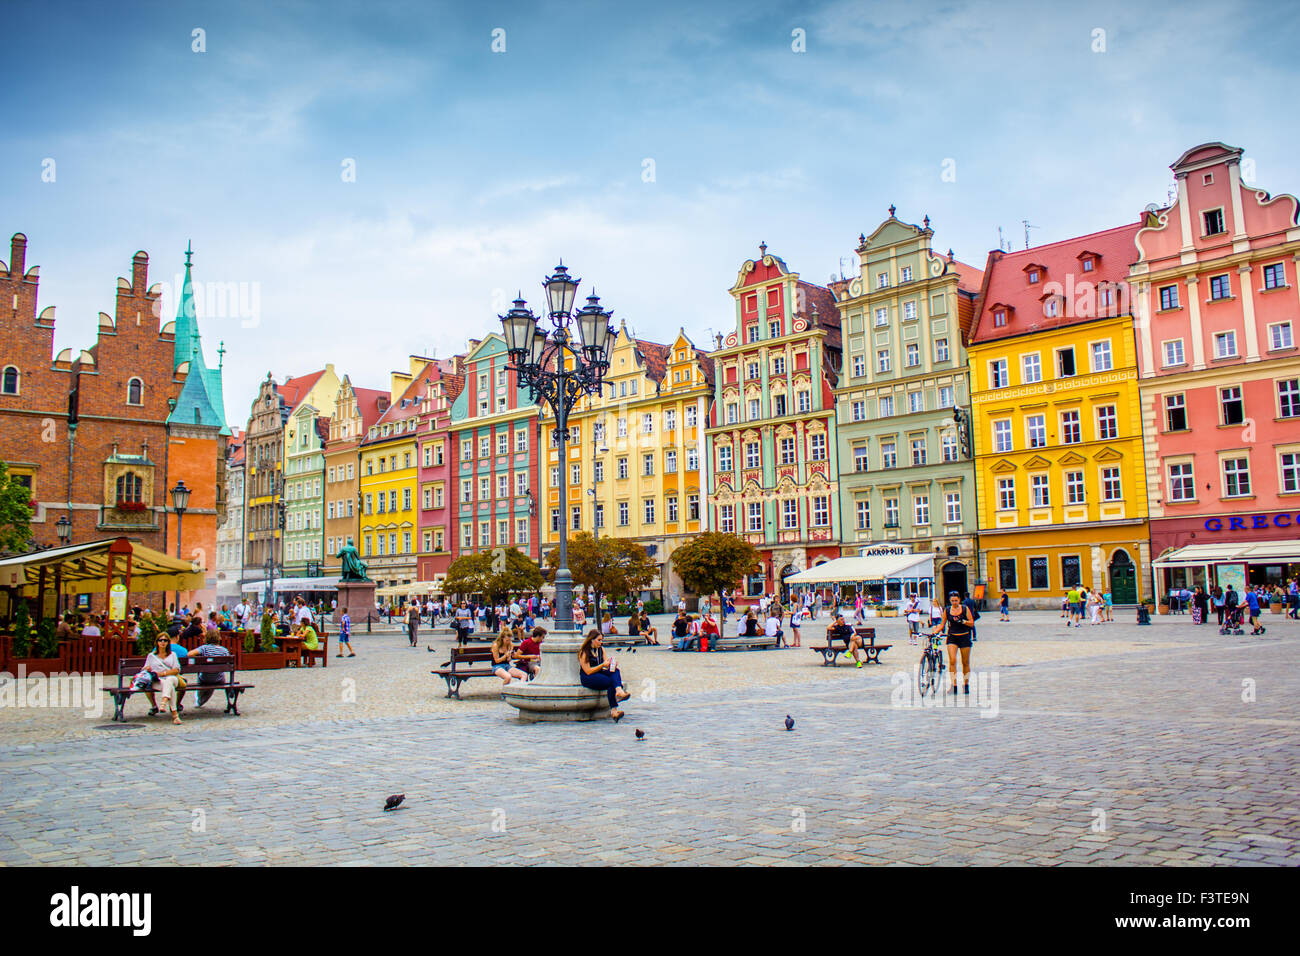 Beautiful historical tenement houses at Old Market Square in the Old Town in Wroclaw, Poland, Europe - Stock Image